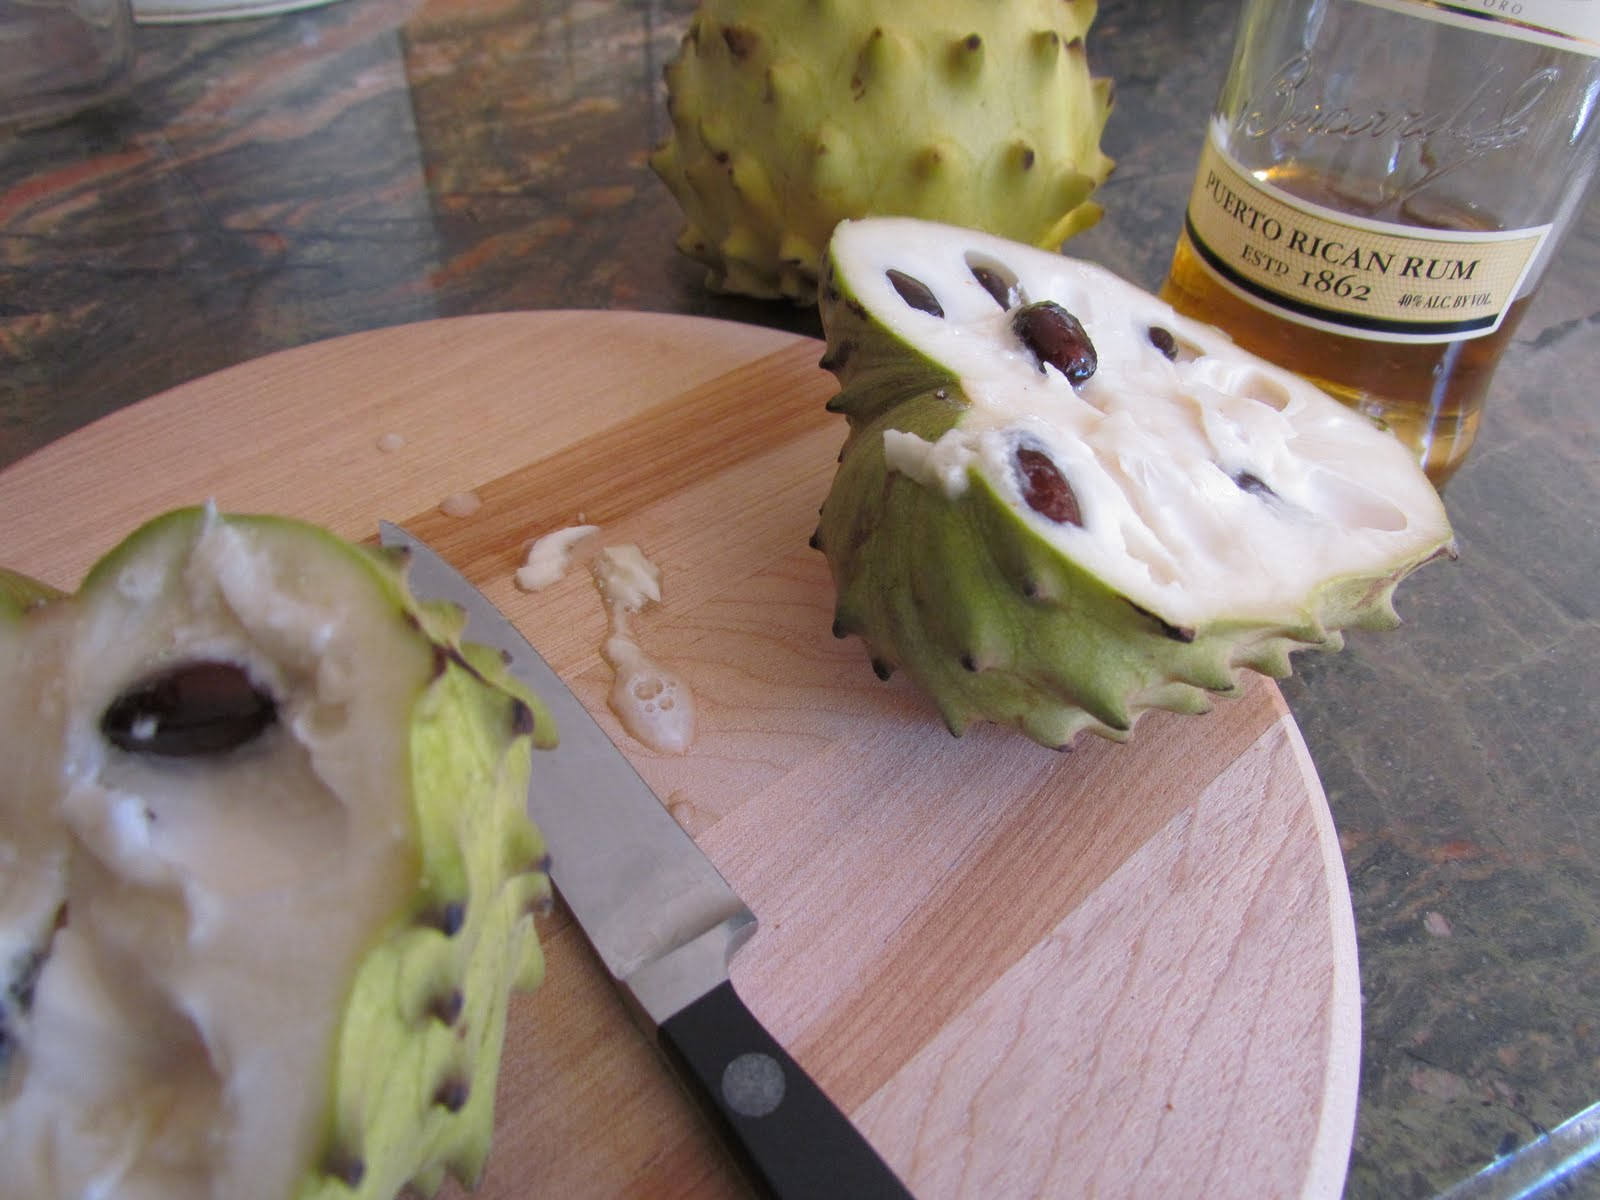 So, technically there's no milk or cream in this... but cherimoya is ...